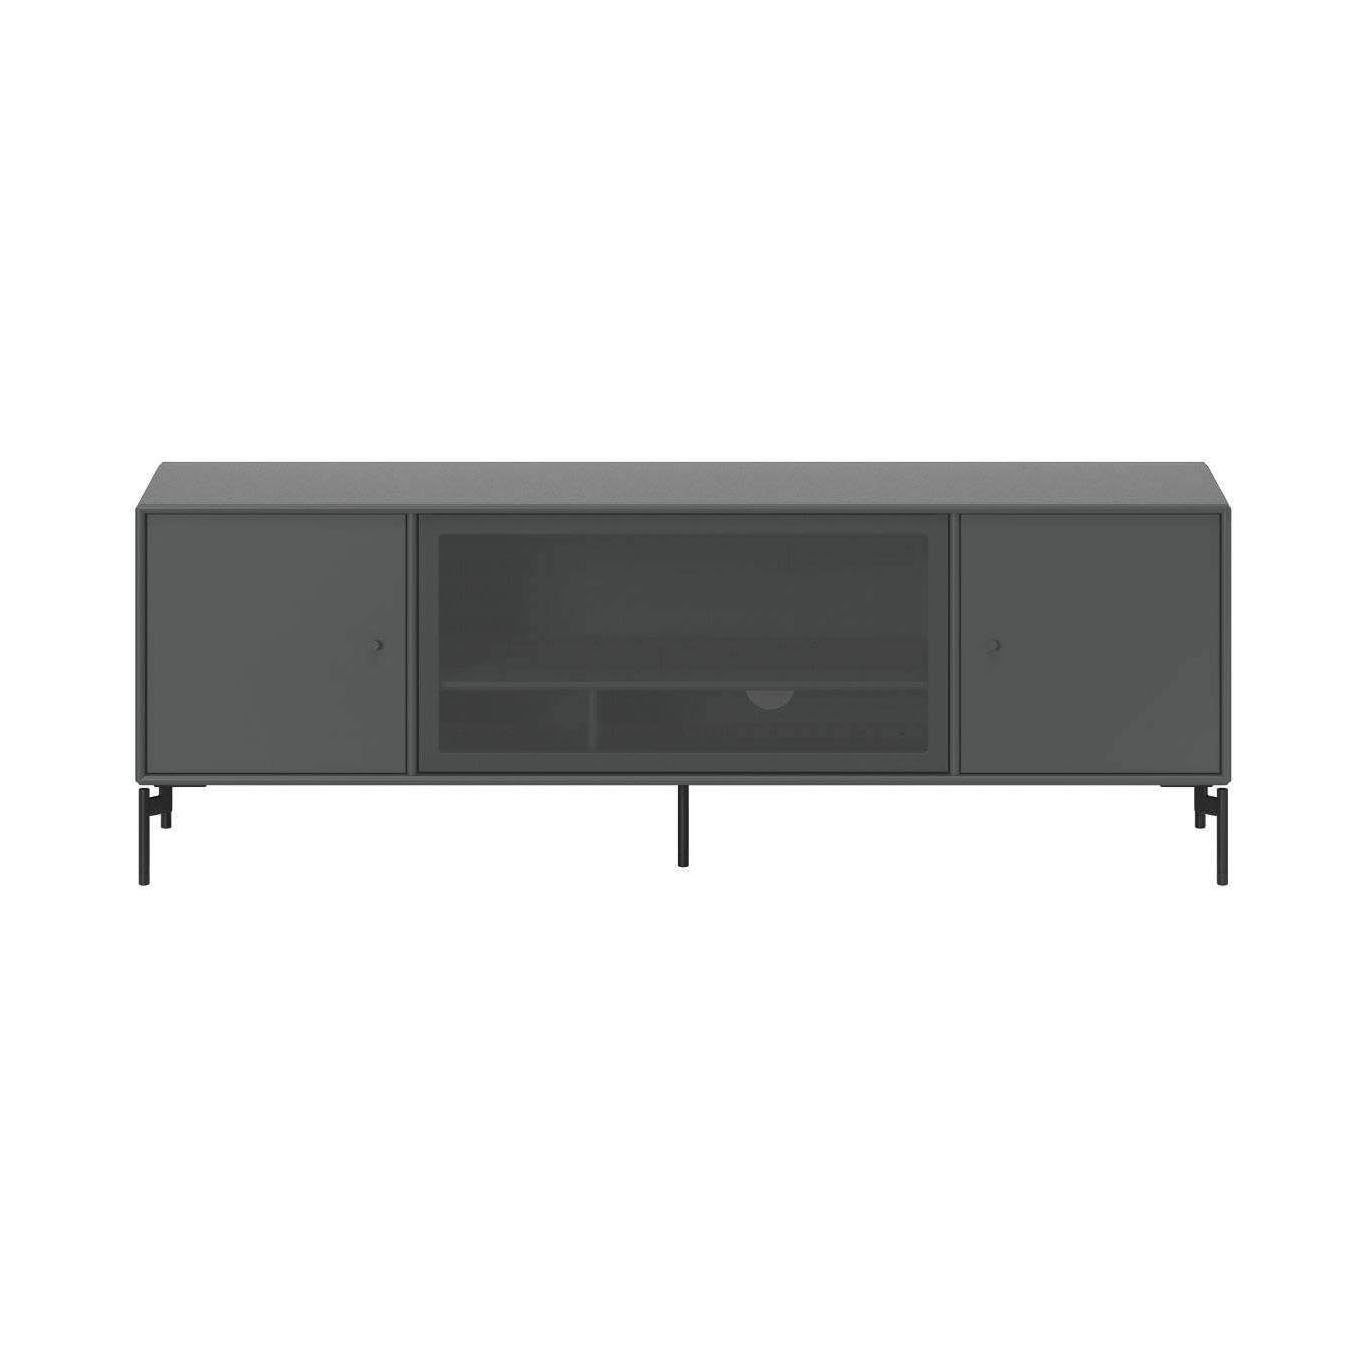 OCTAVE 3 TV & SOUND UNIT